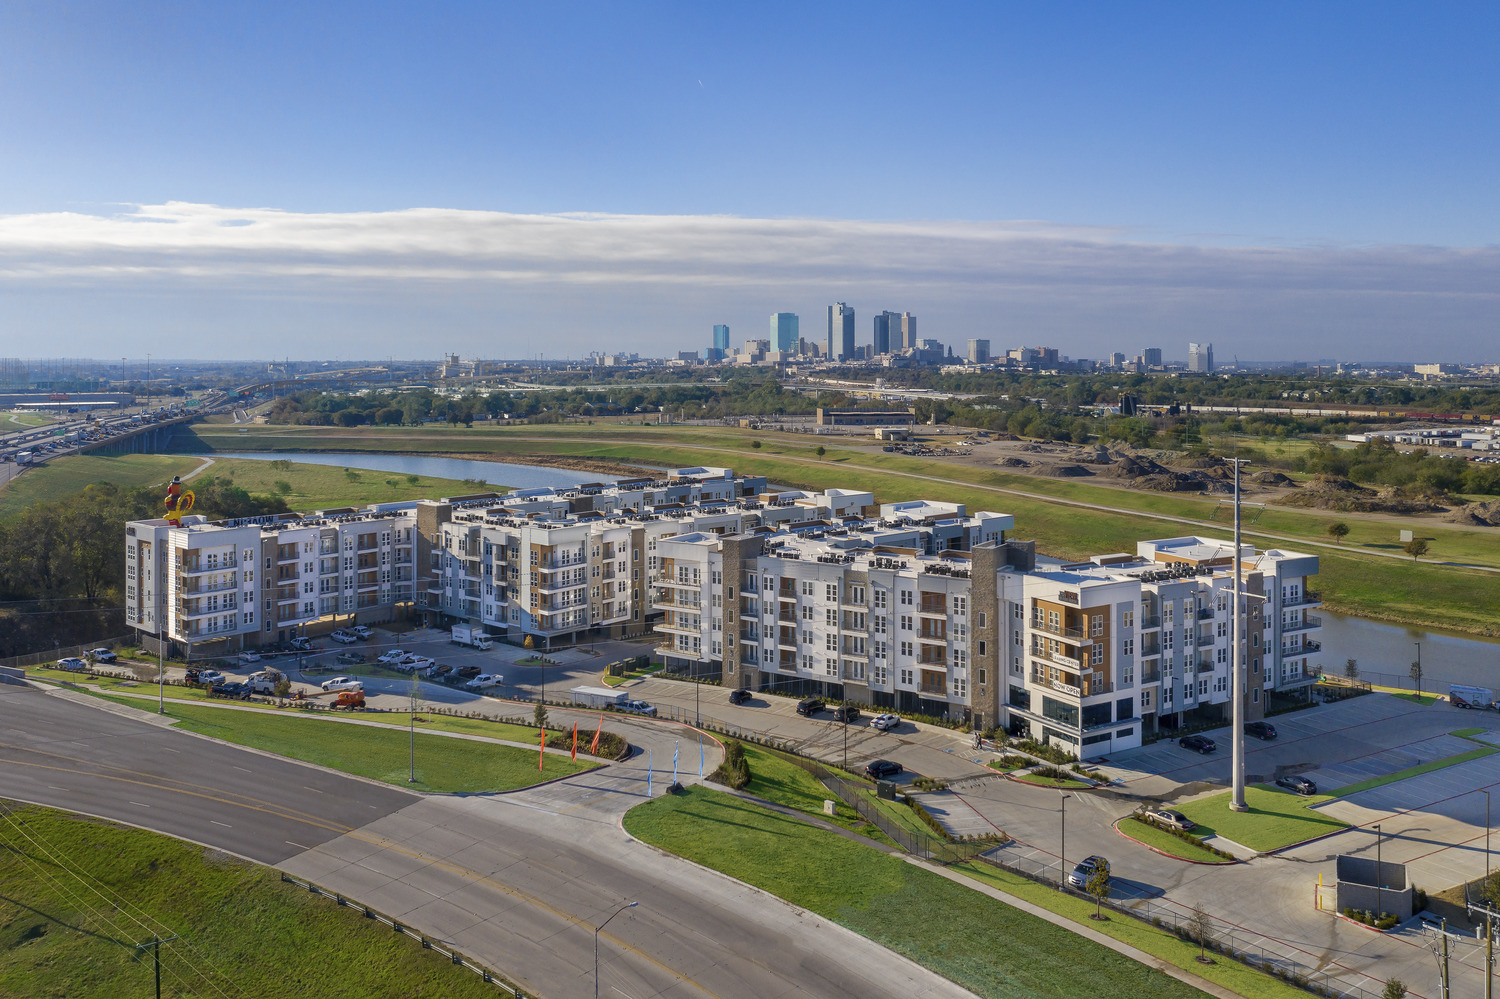 CBG builds The View of Fort Worth, a 300-Unit Apartment Community with Amenities in Fort Worth, TX